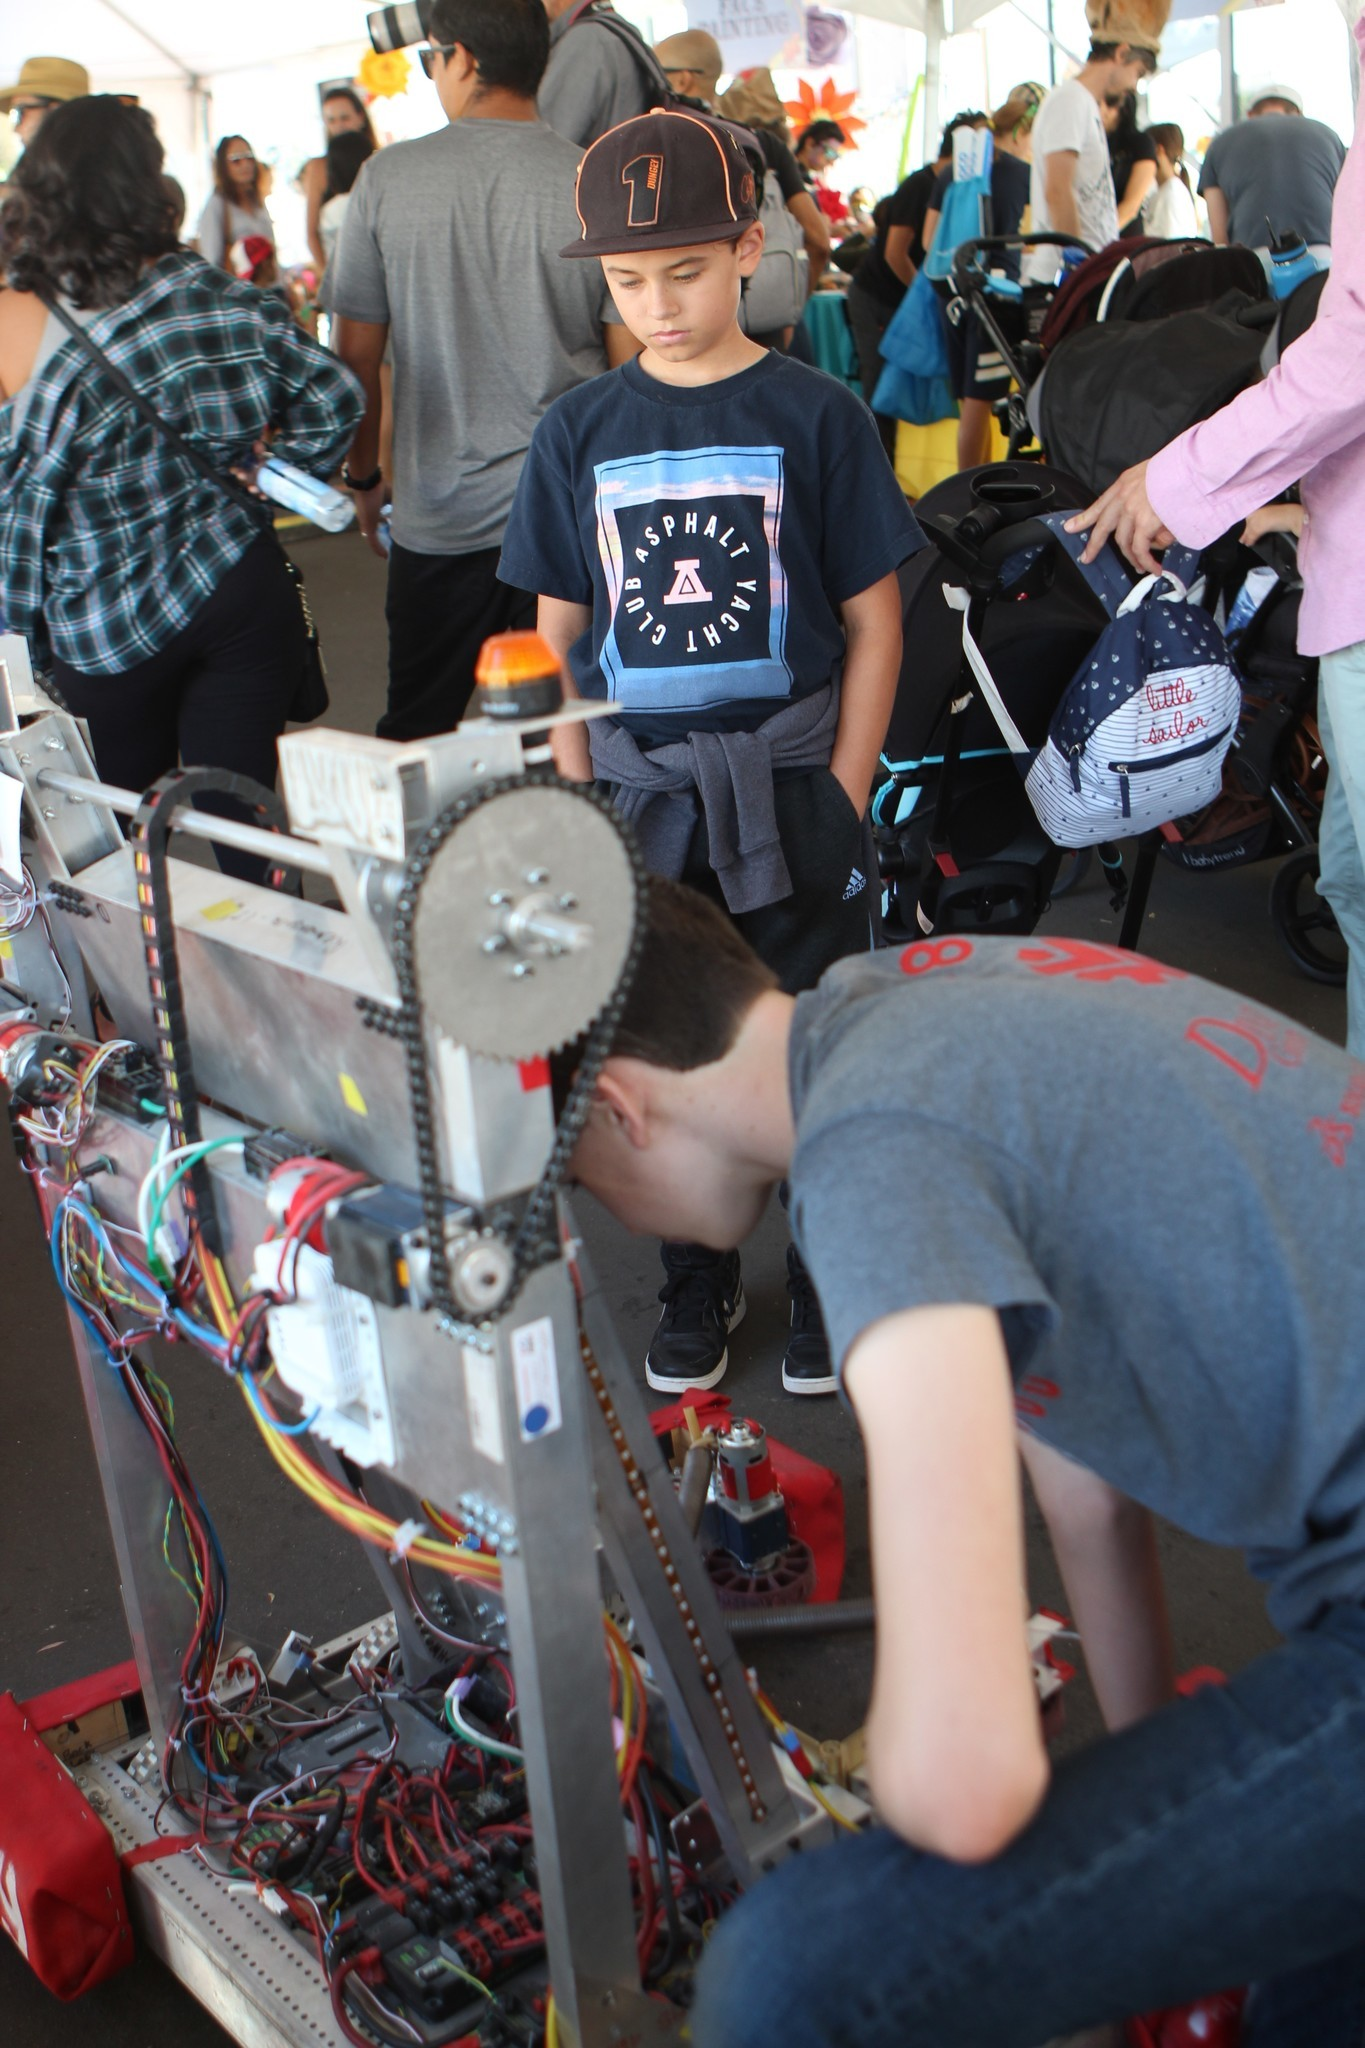 Aidan Farmer, 11, of Carmel Valley watches patiently as La Jolla High School junior Alex Gross tinkers with Veto the robot.